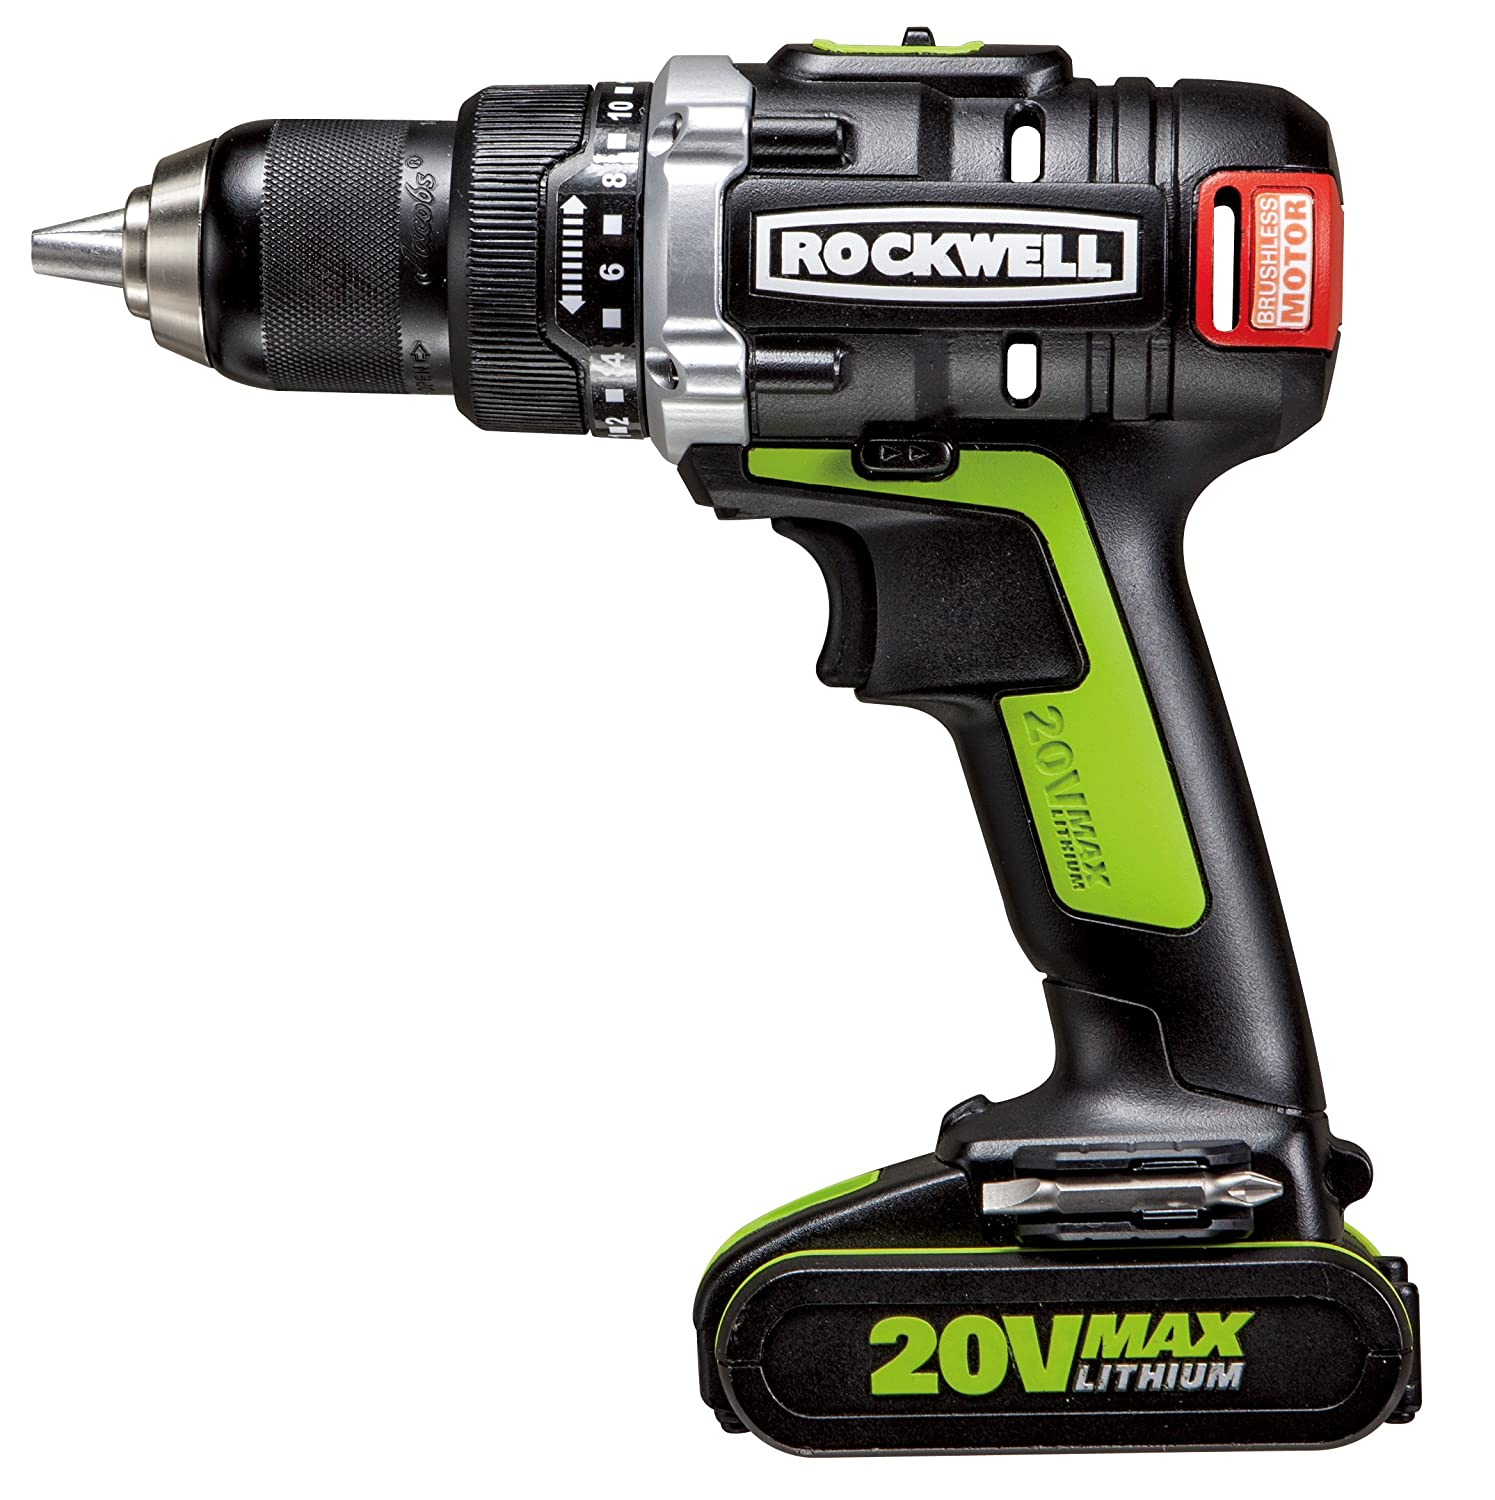 Rockwell RK2852K2 (The Ergonomic Drill)